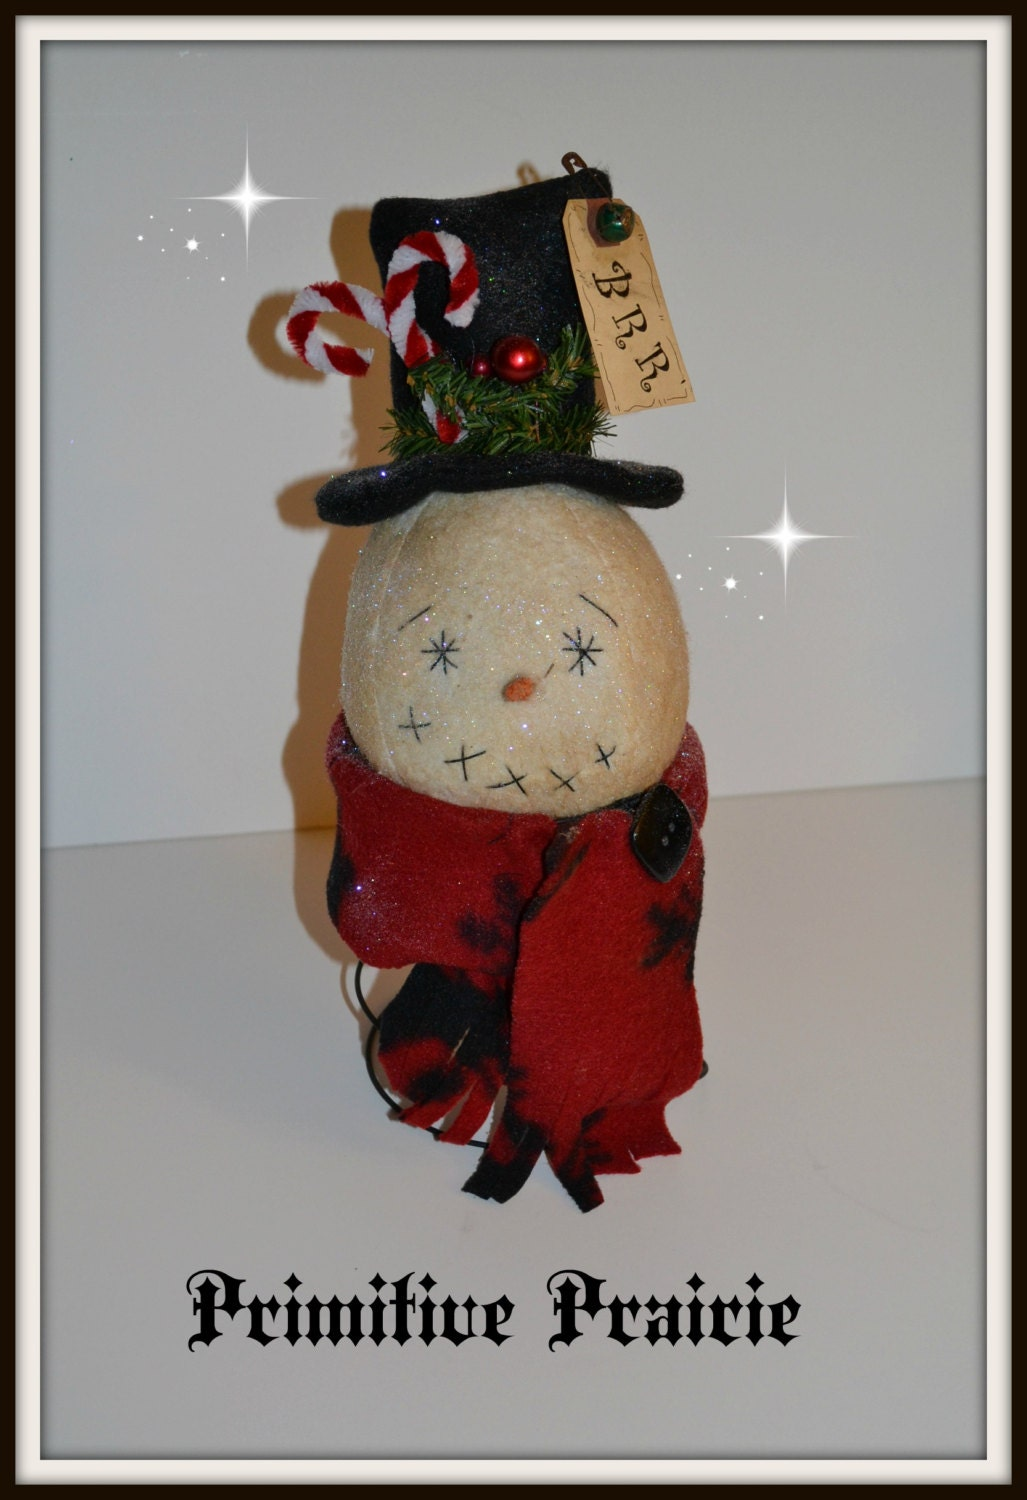 Primitive winter snowman on a handmade bed spring, handmade winter snowman decoration Christmas decoration